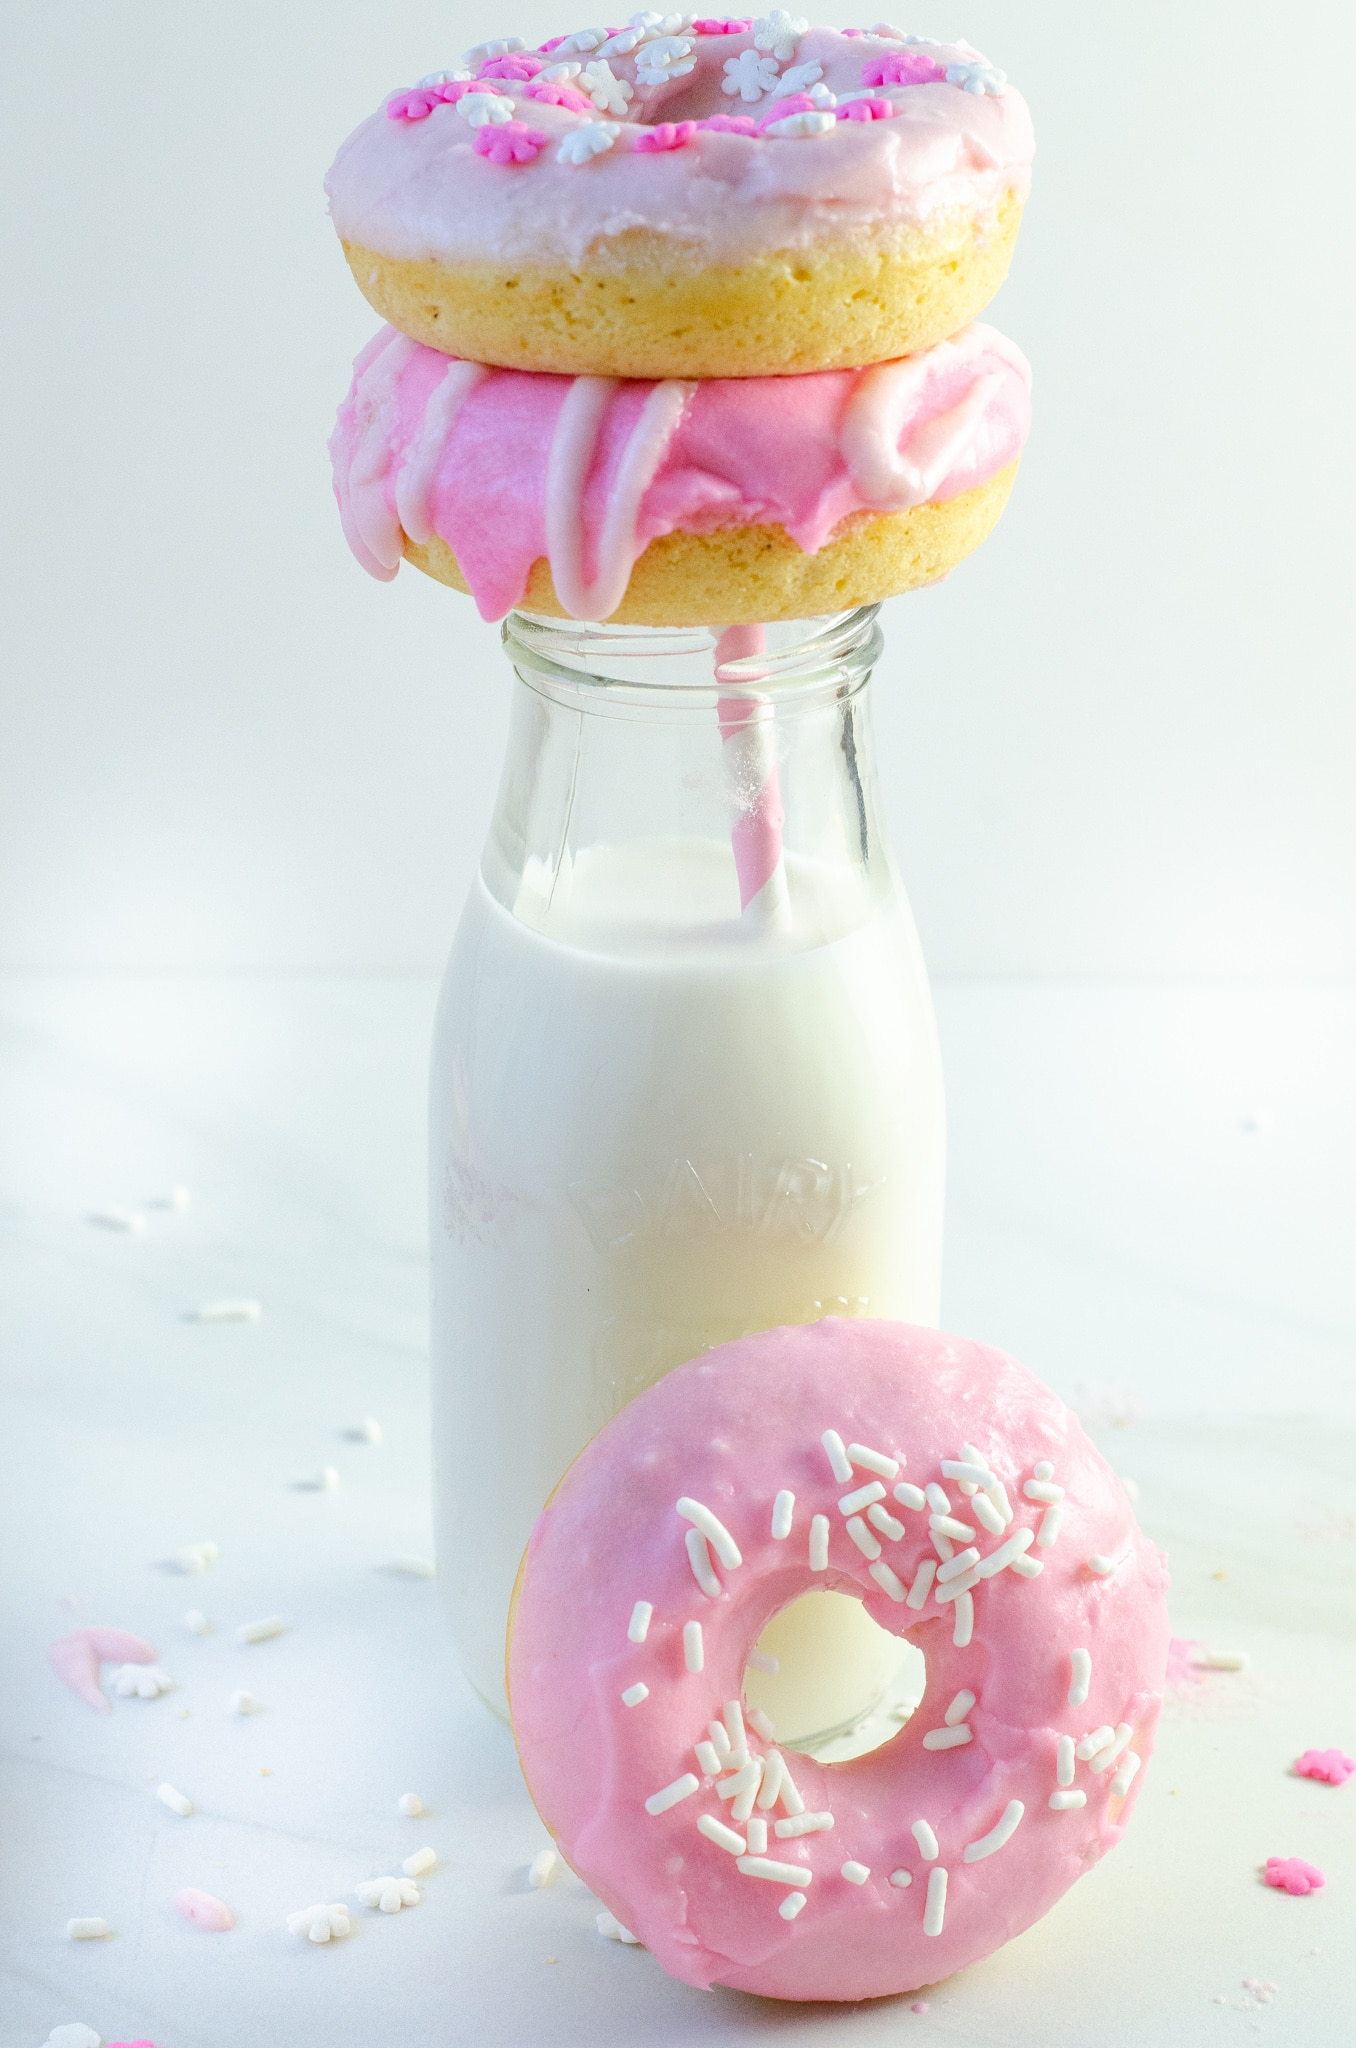 Baked Vanilla Donuts Milk Stack. Baked Vanilla Donuts are perfect for any occasion, Valentine's Day treats or birthday sweets, the possibilities are endless.